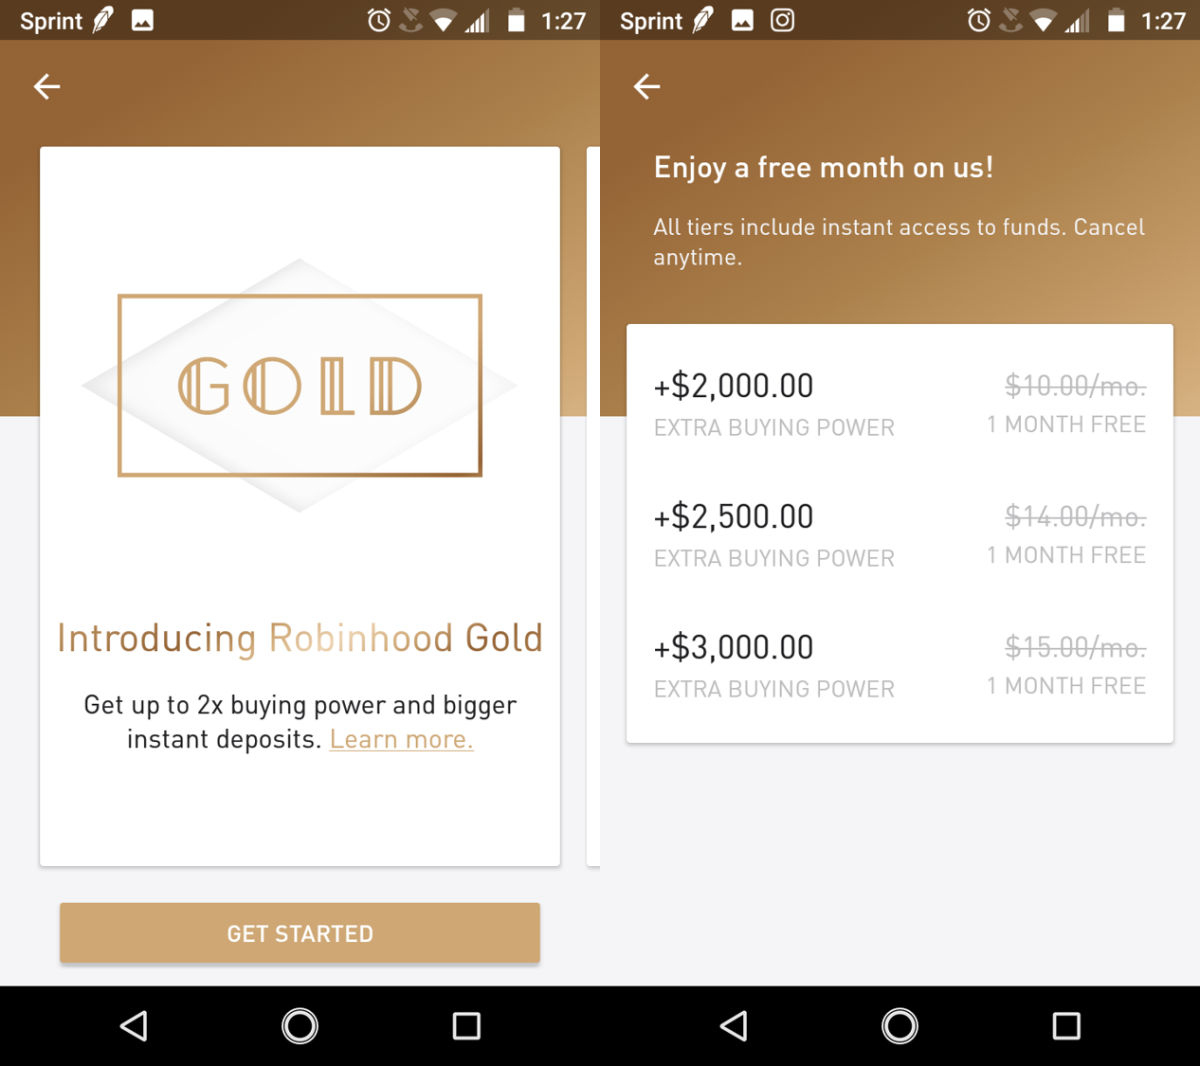 About Robinhood Gold Tiers